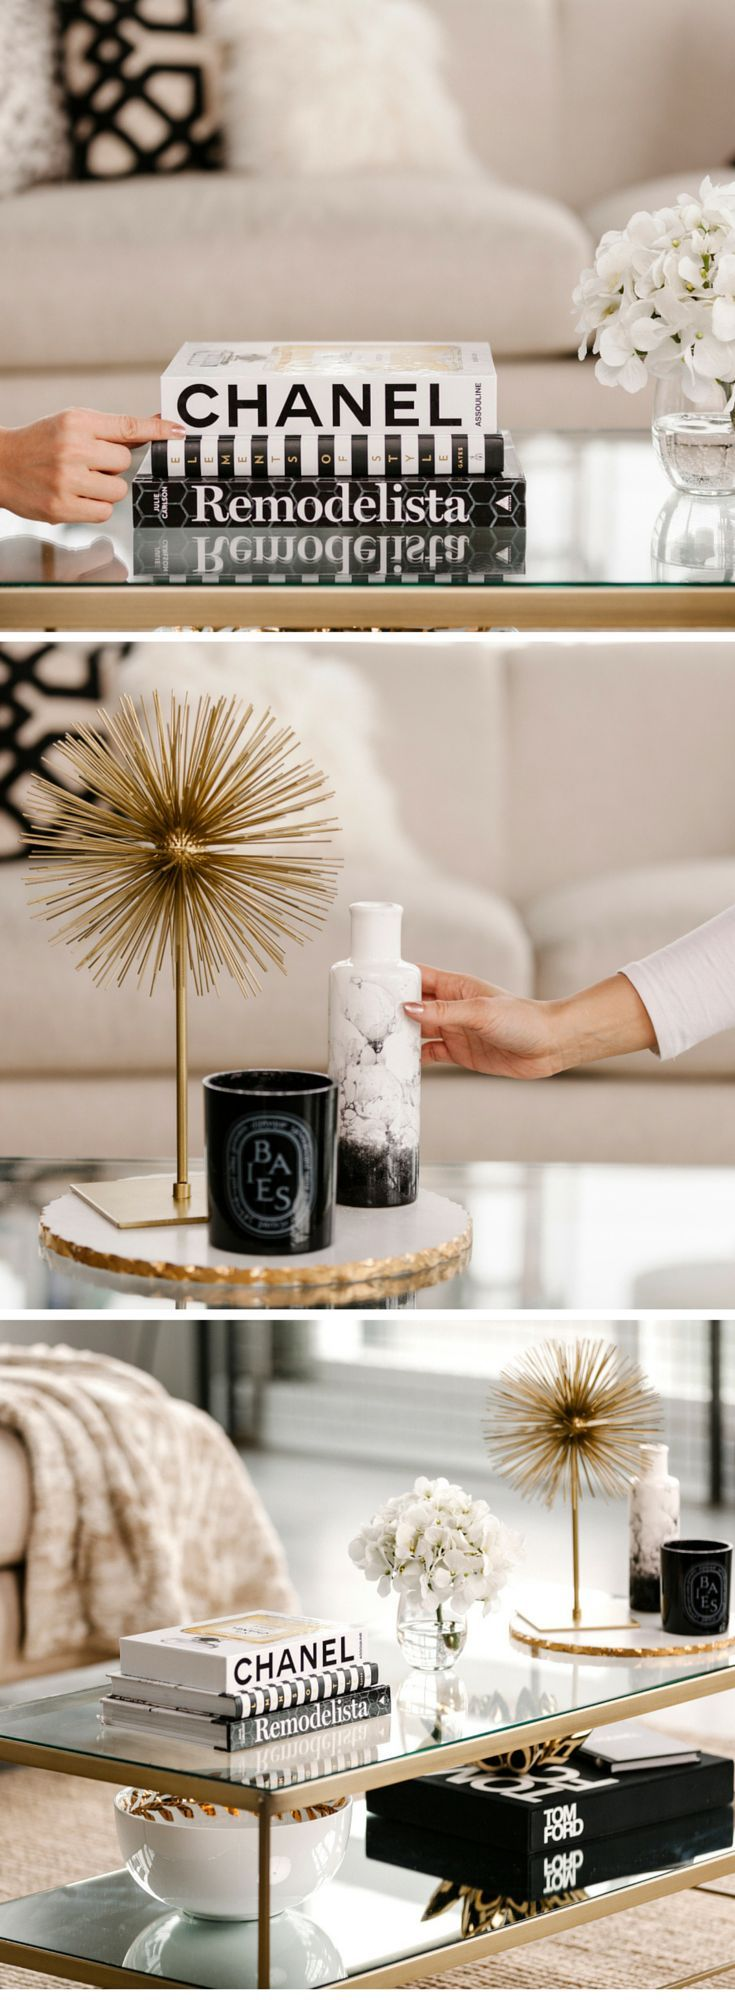 Black, gold and white elements styled perfectly to create an elegant coffee table arrangement.